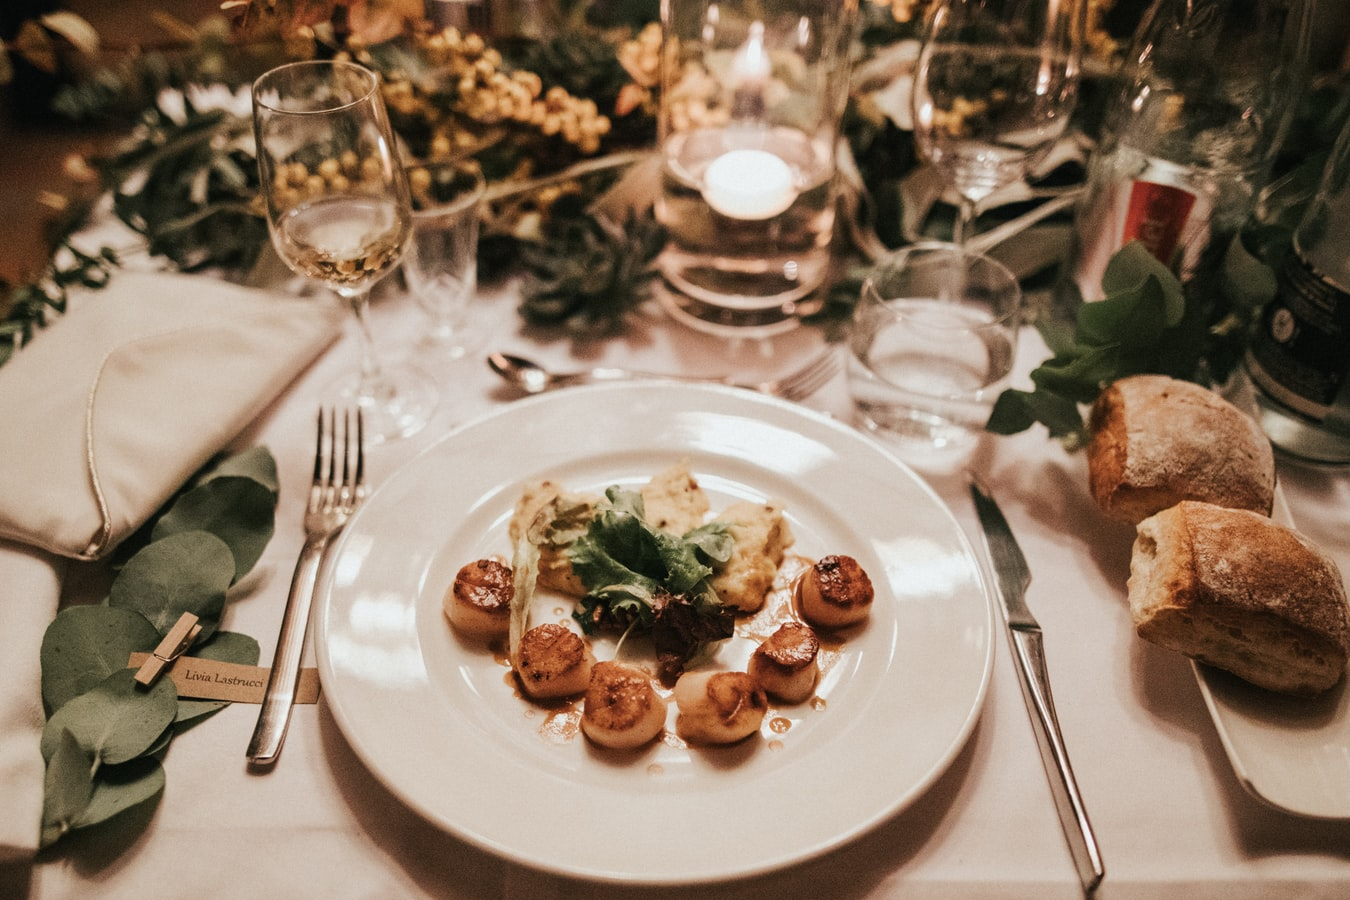 image of a dinner place setting with scallops